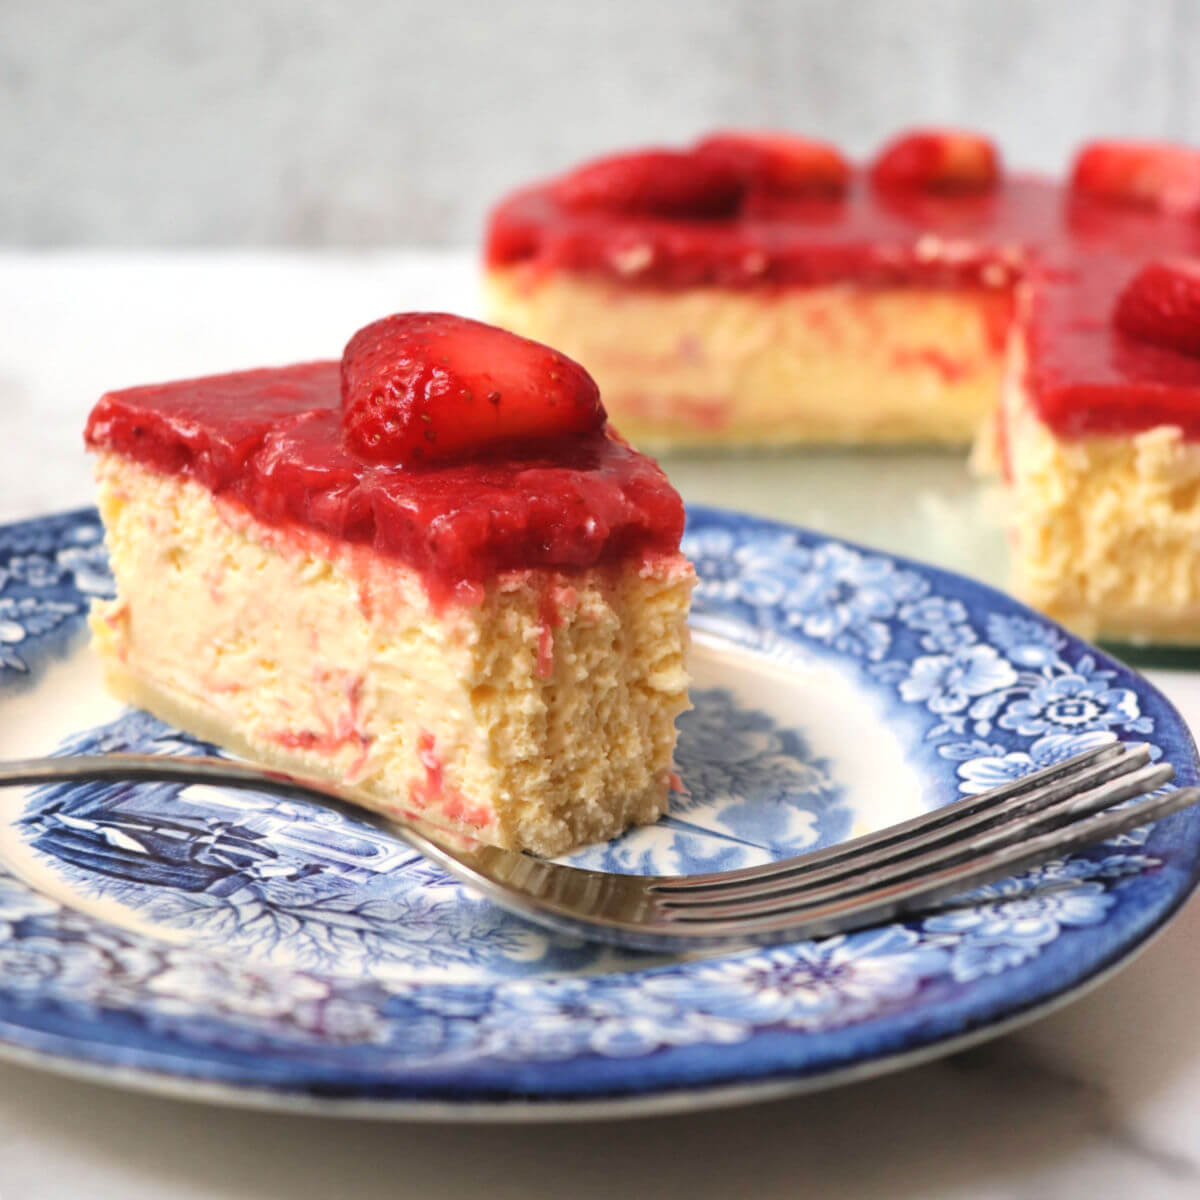 Best ever creamy keto strawberry cheesecake. Low carb, sugar-free with a gluten-free almond flour crust. #ketodessert #ketorecipes